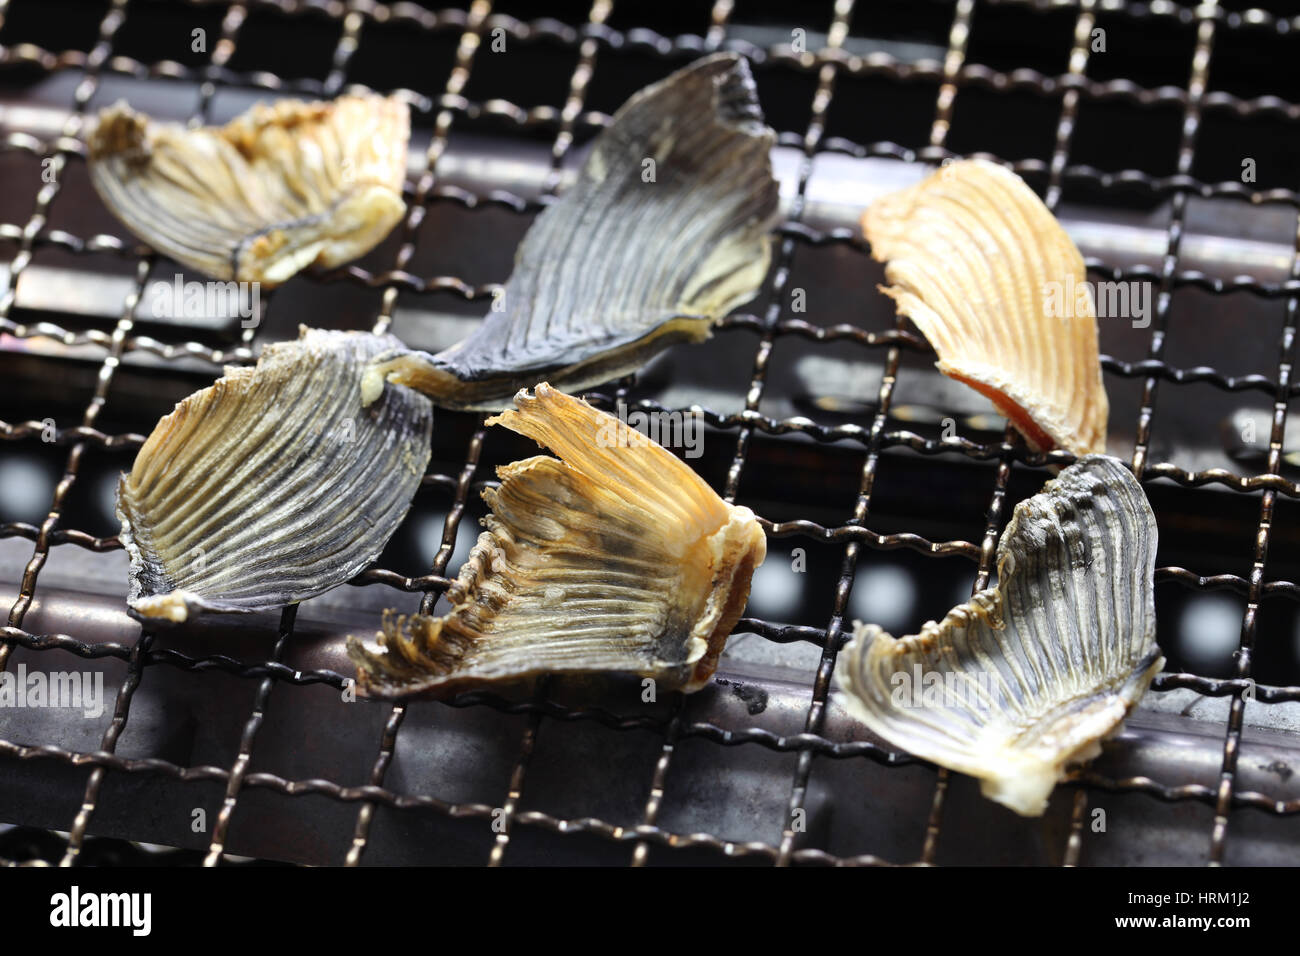 grilling dried blowfish fins for Hirezake (japanese hot sake drink ) - Stock Image